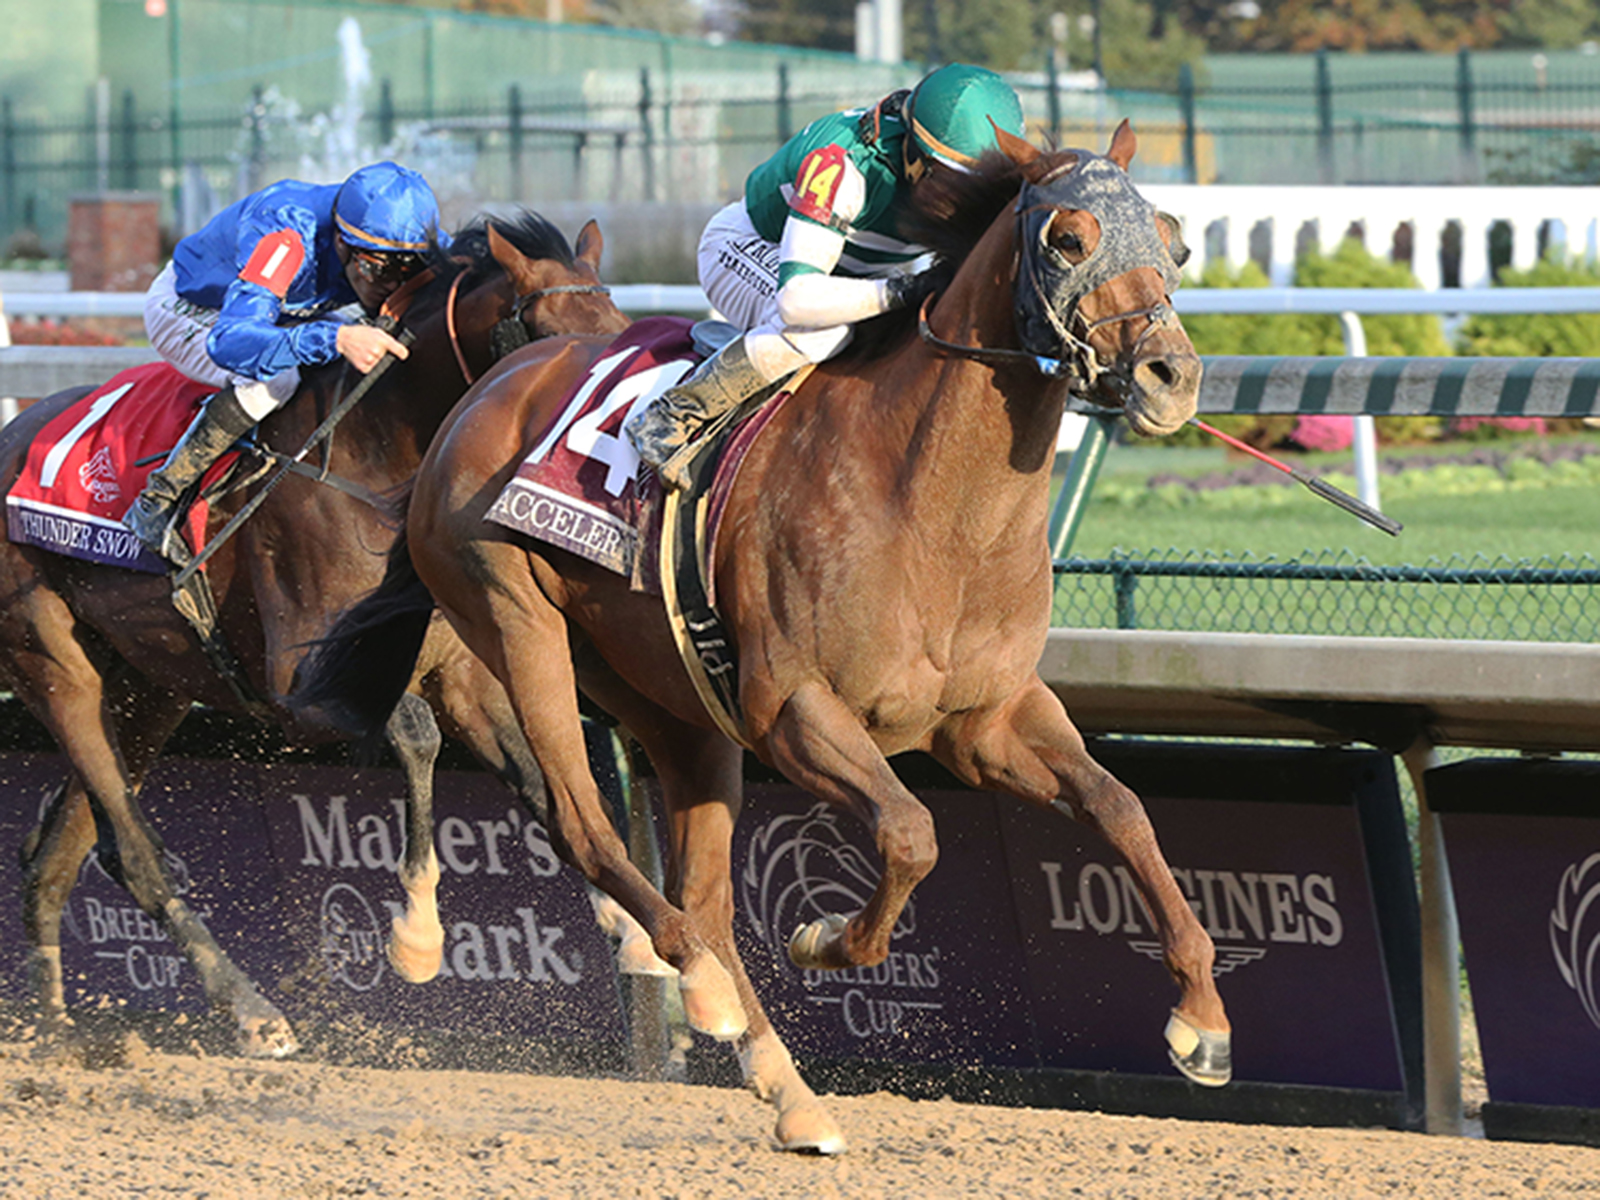 accelerate wins the breeders' cup classic